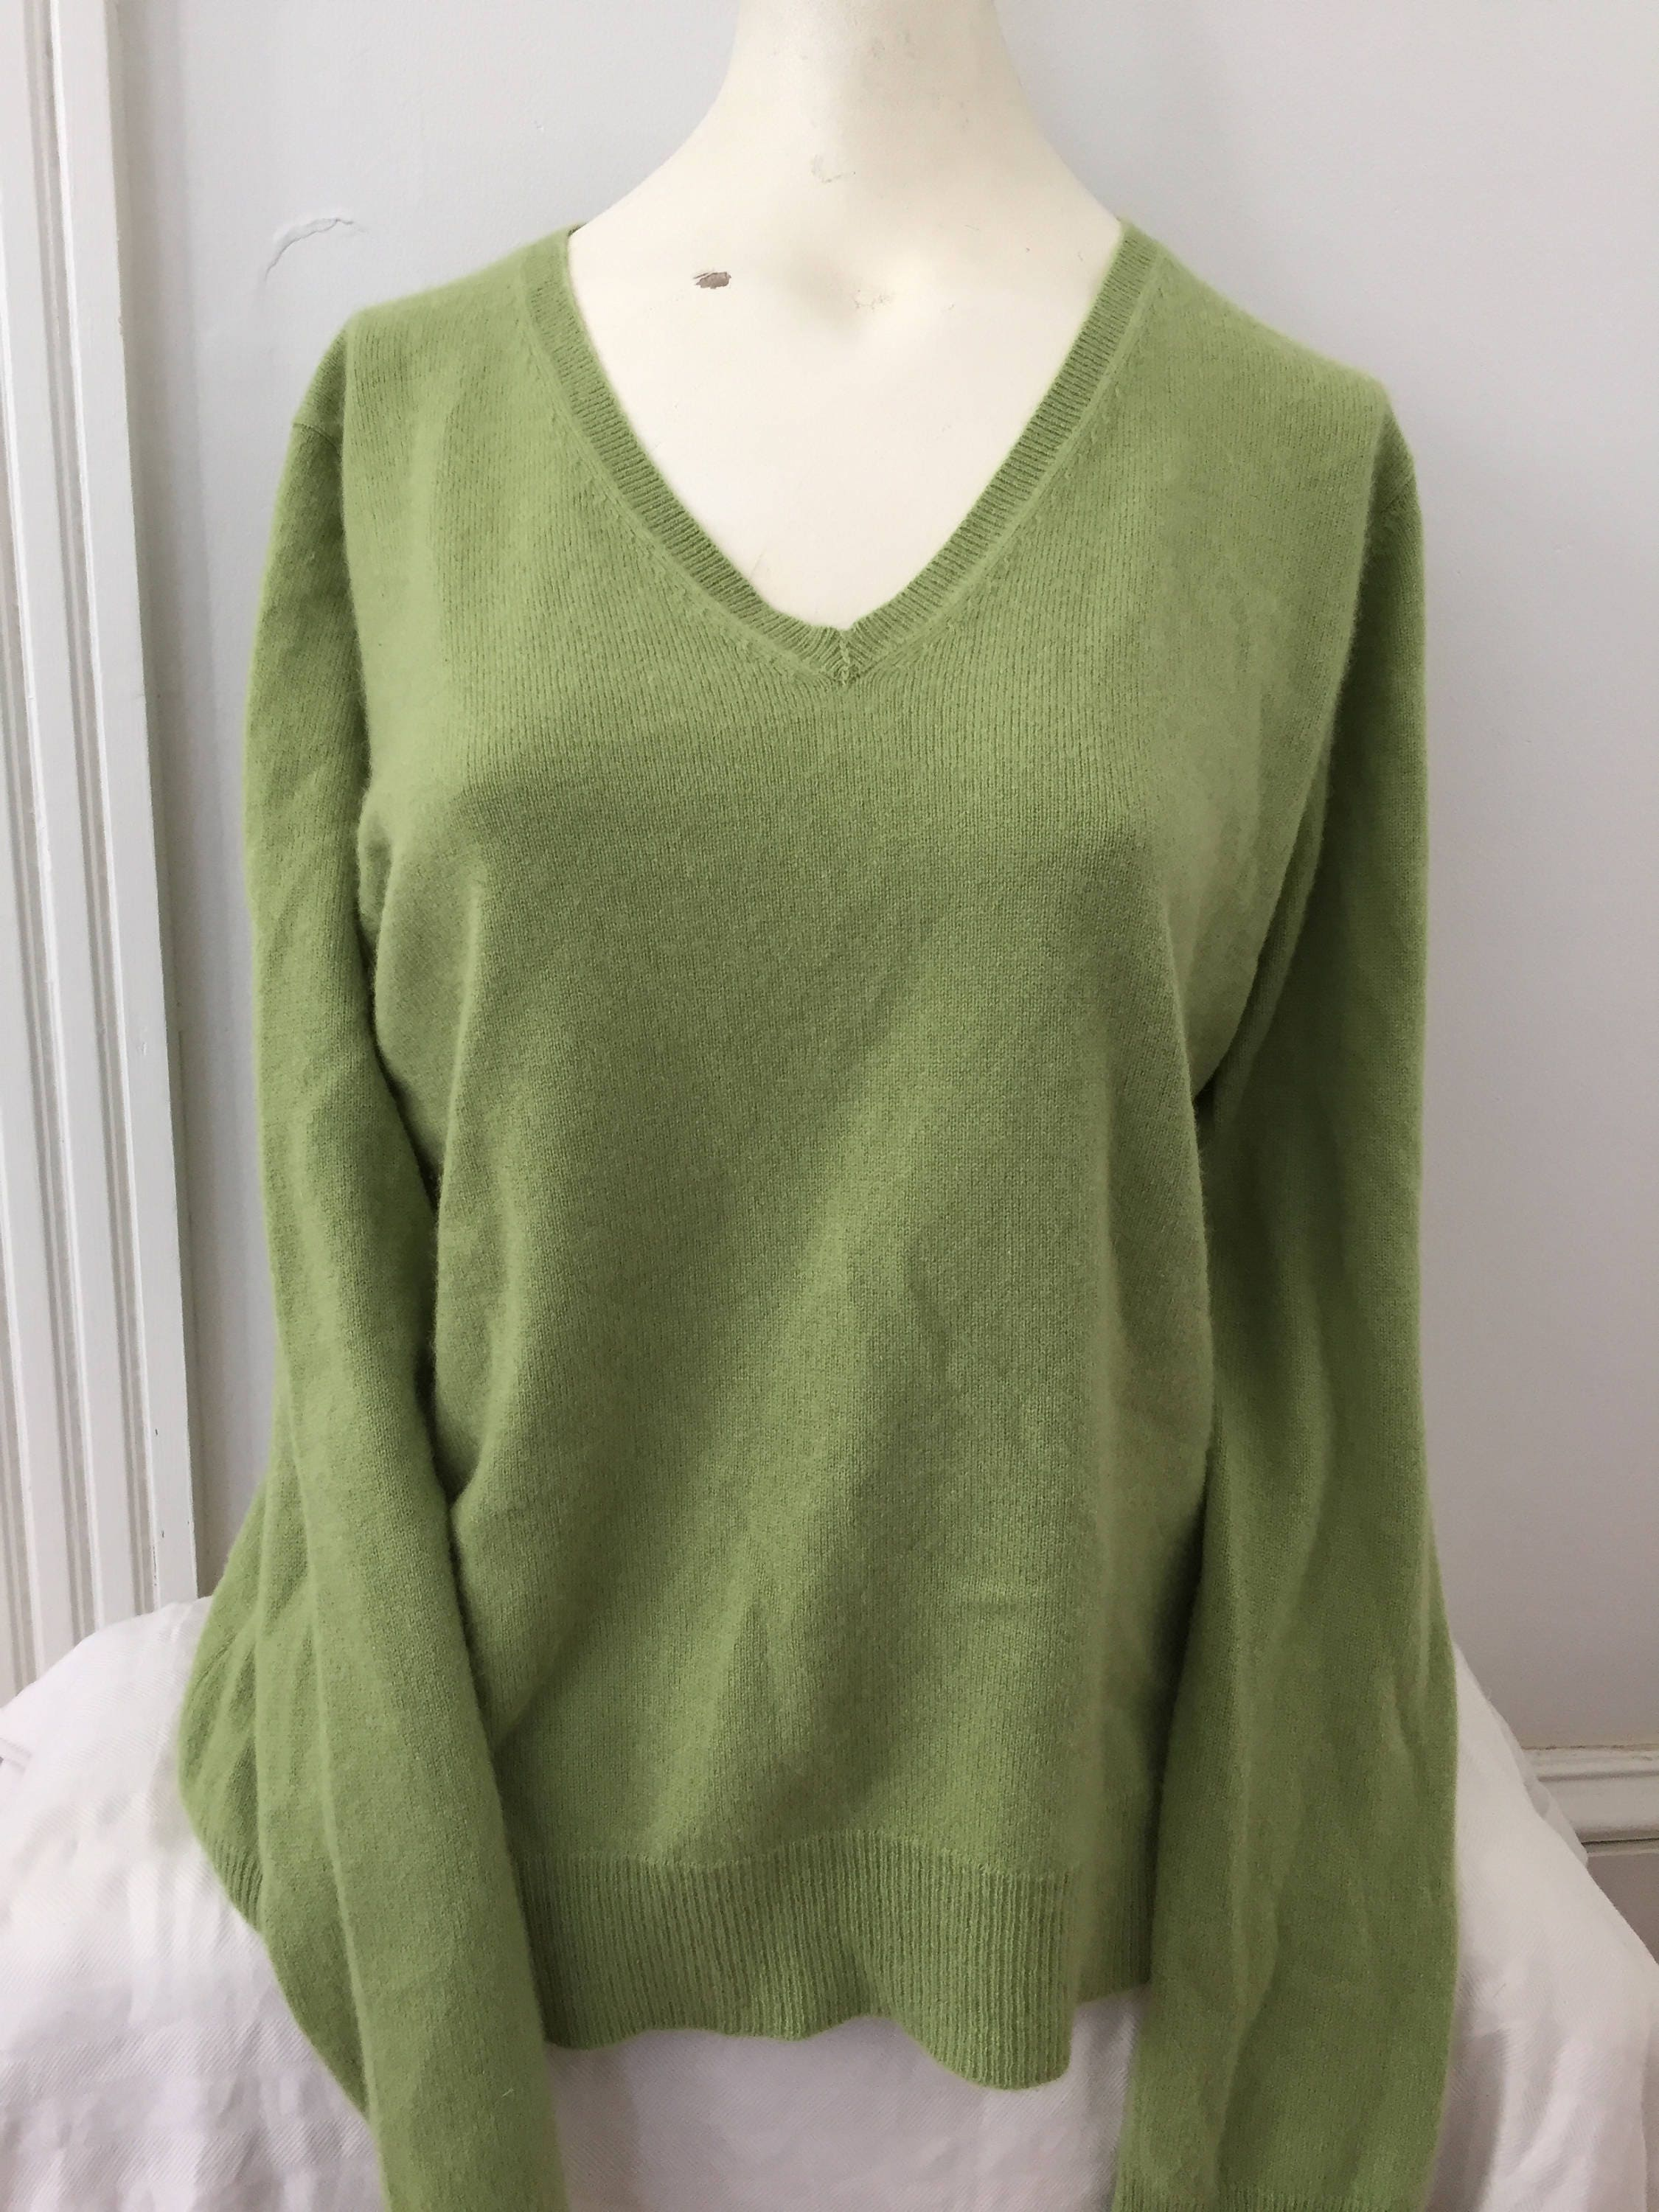 50s Vintage Mint green sweater 50s Jantzen sweater Kharafleece V neck 50s green vintage pullover S/ M tE41W36t